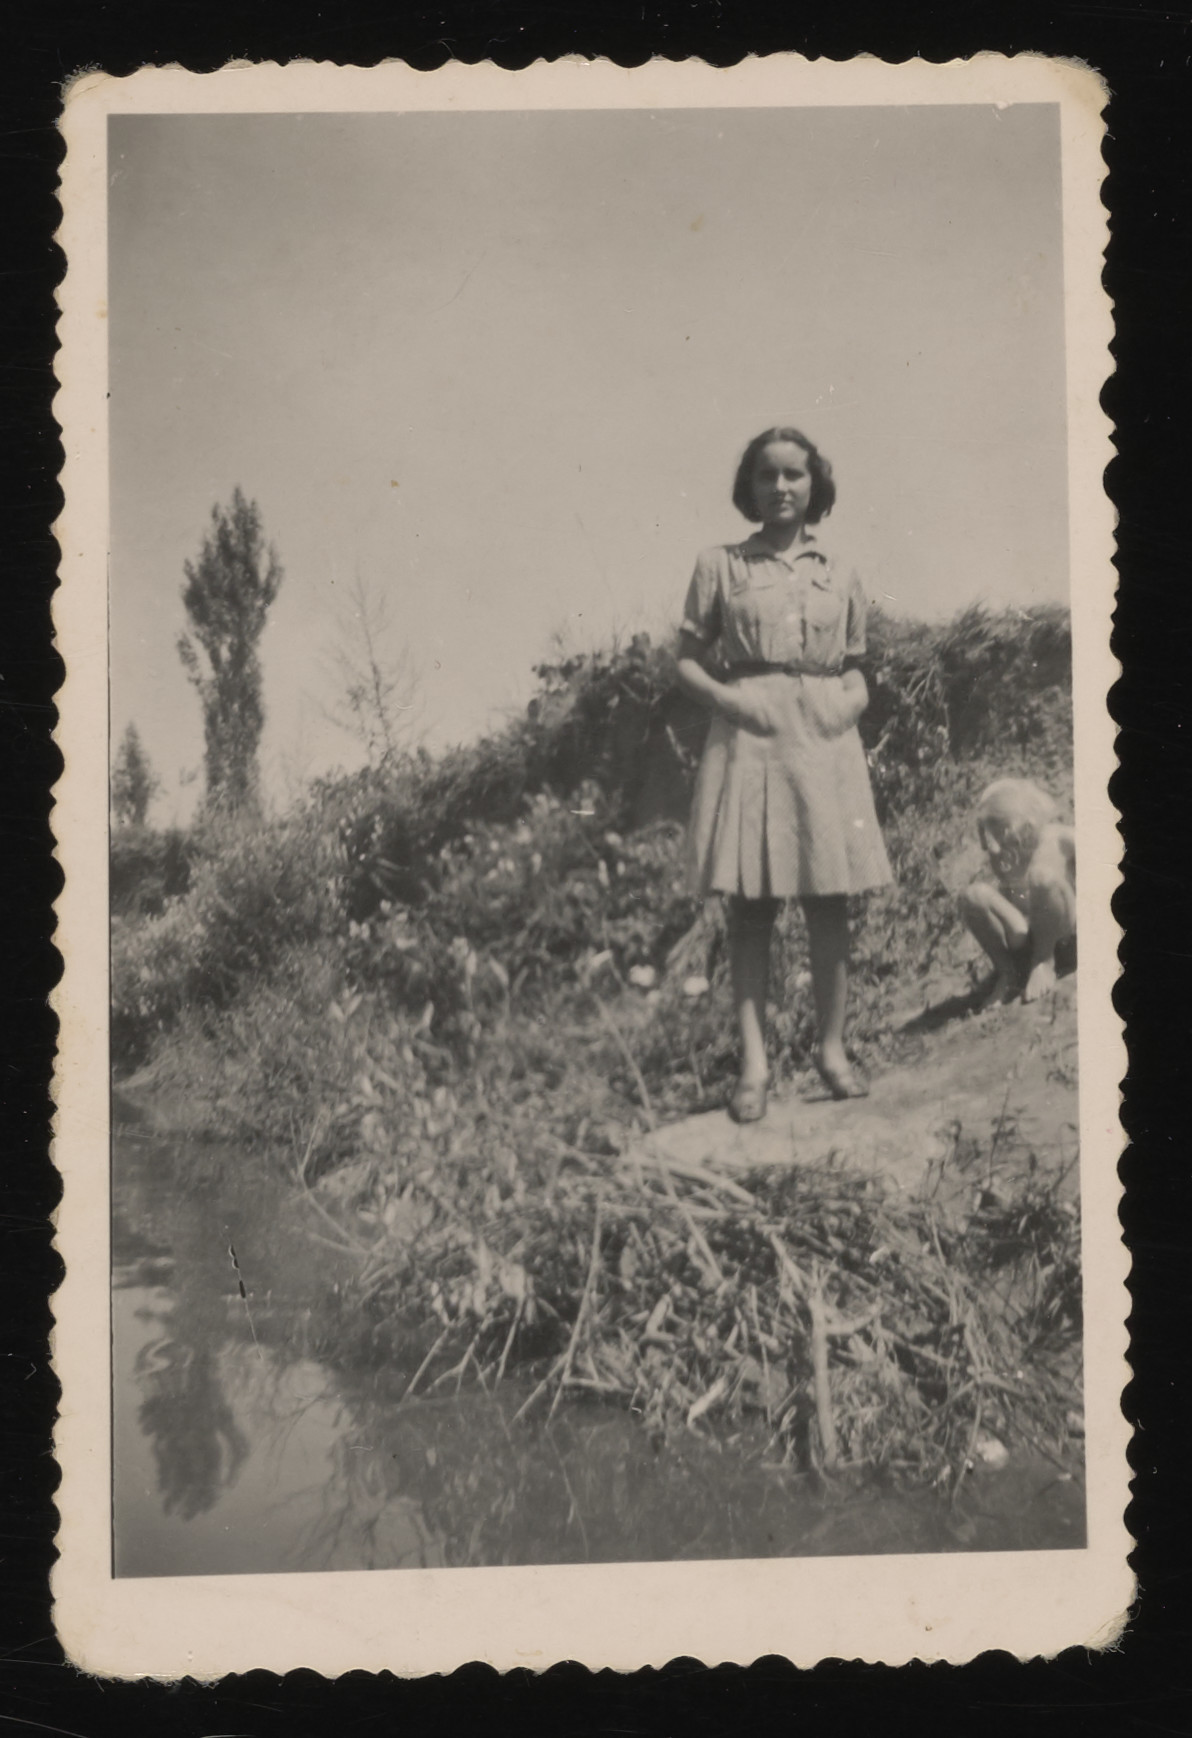 Anna Brunn, a Hungarian Jewish teenage girl, stands next to a river.